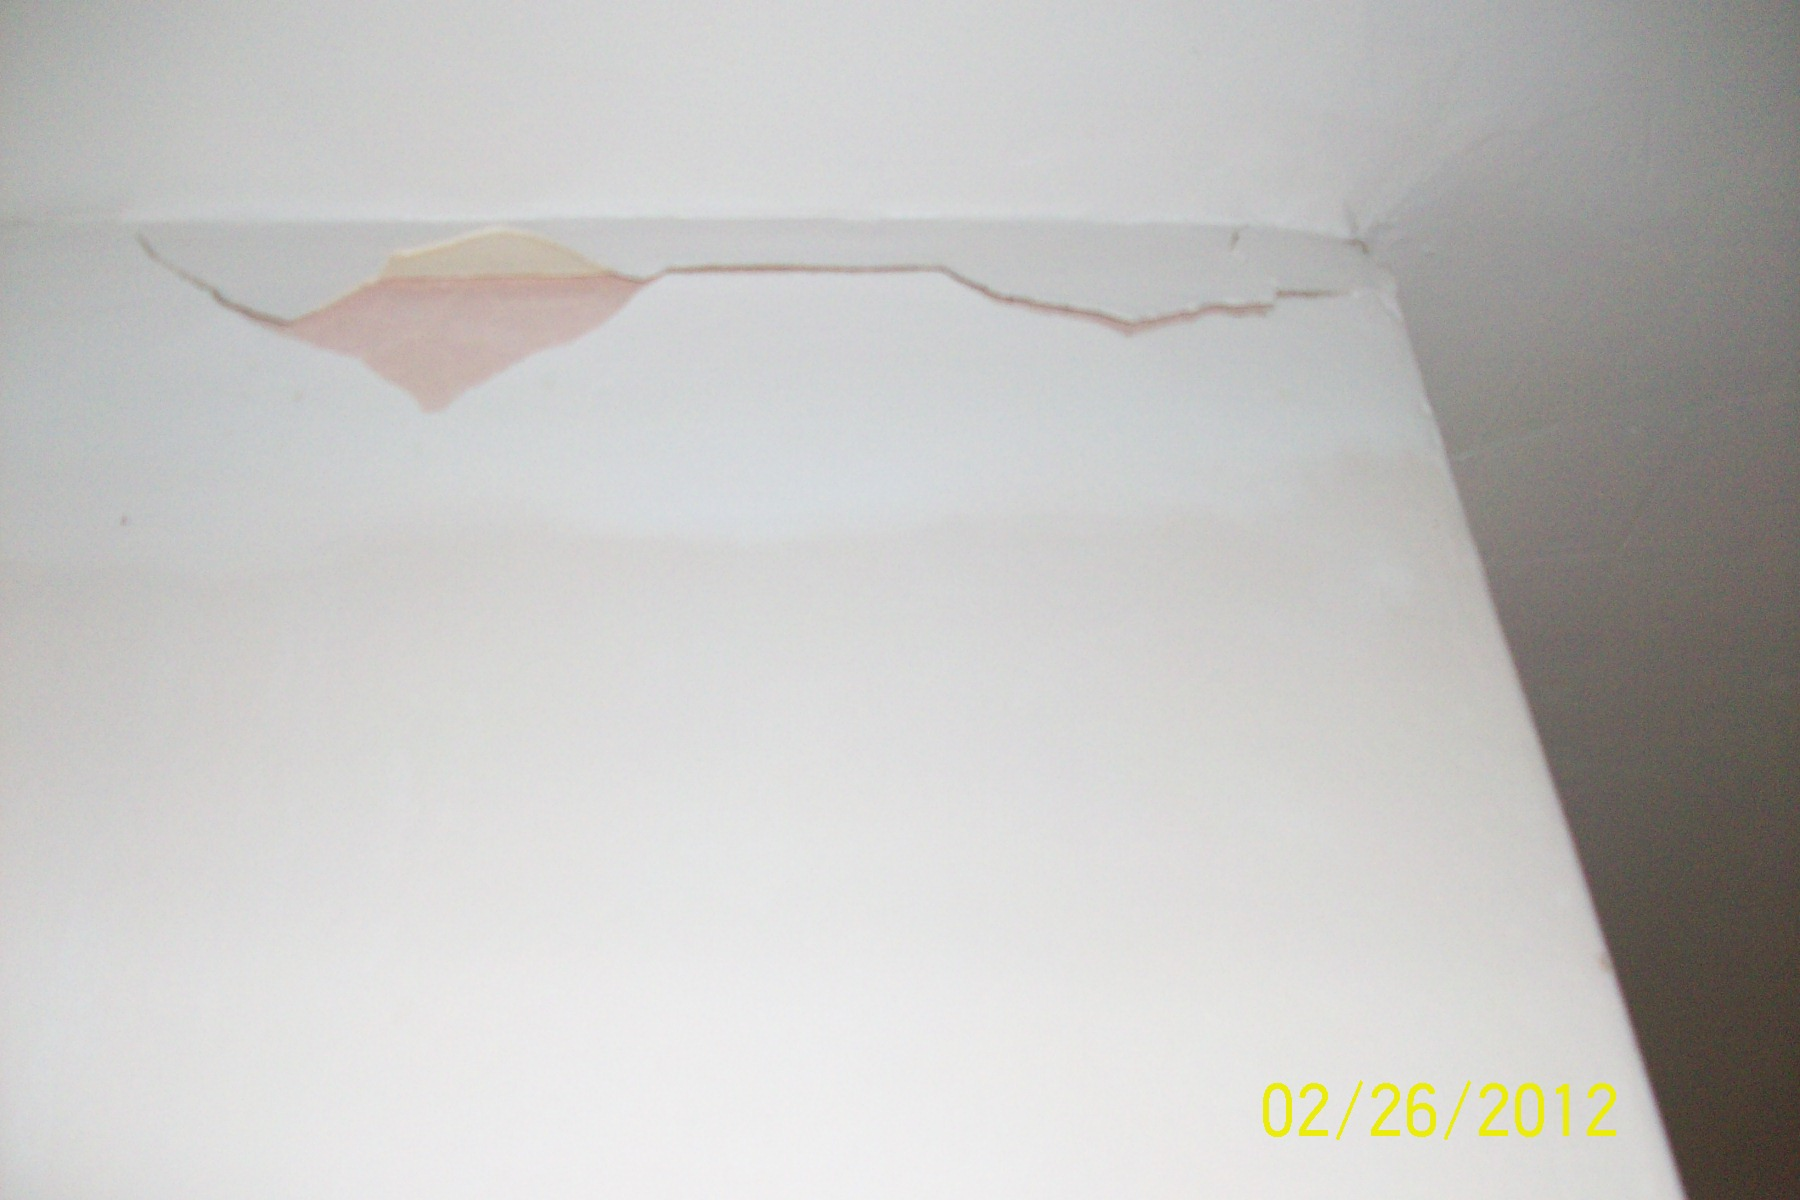 Cracks in plaster by ceiling sinkhole Orlando